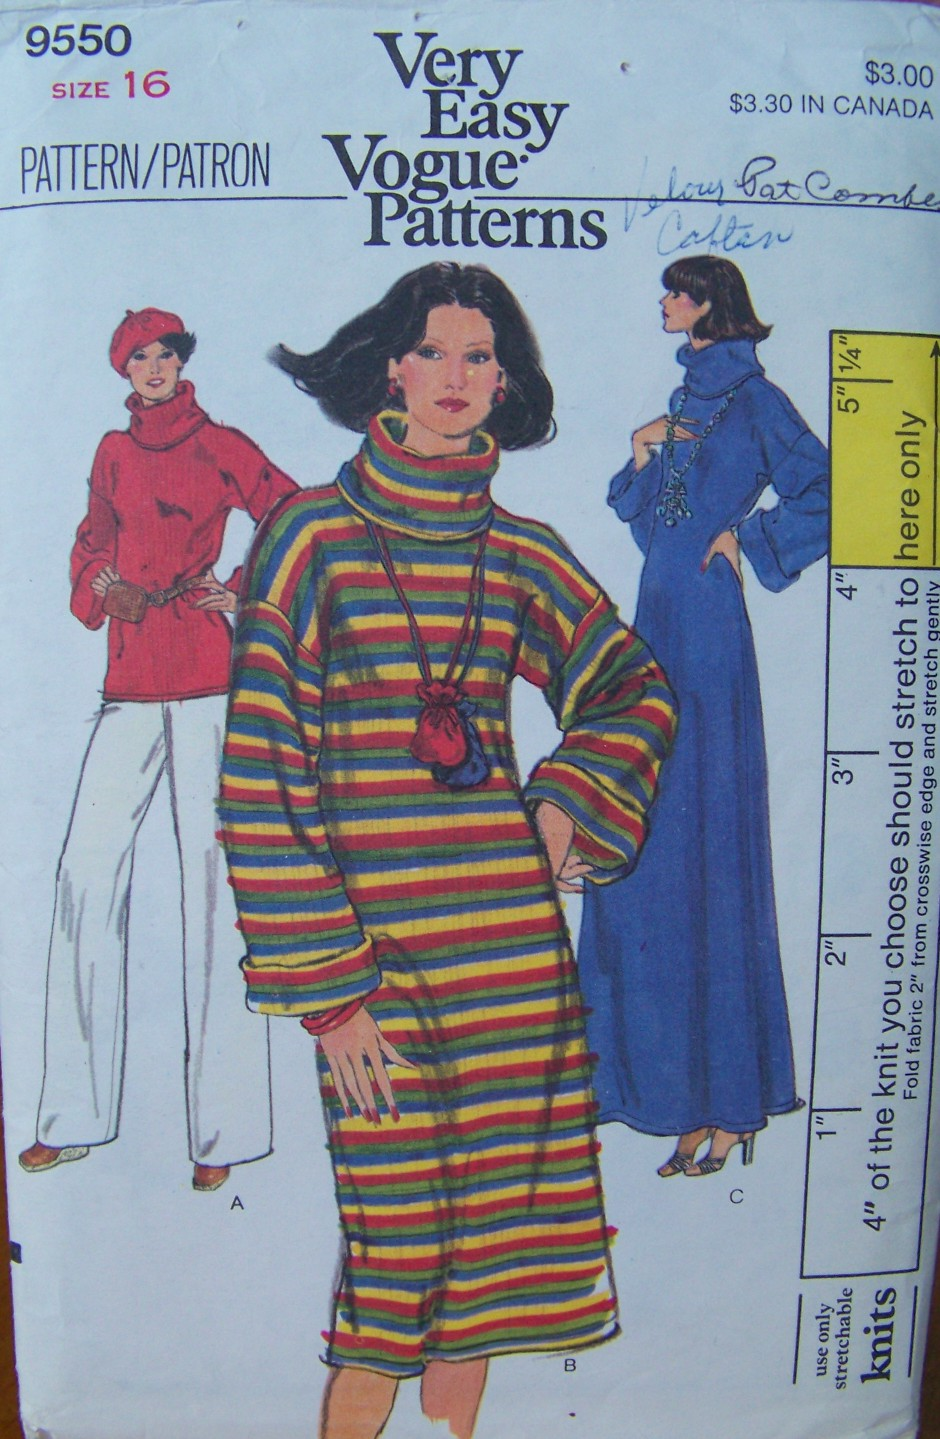 Vogue 9550 A | Vintage Sewing Patterns | FANDOM powered by Wikia